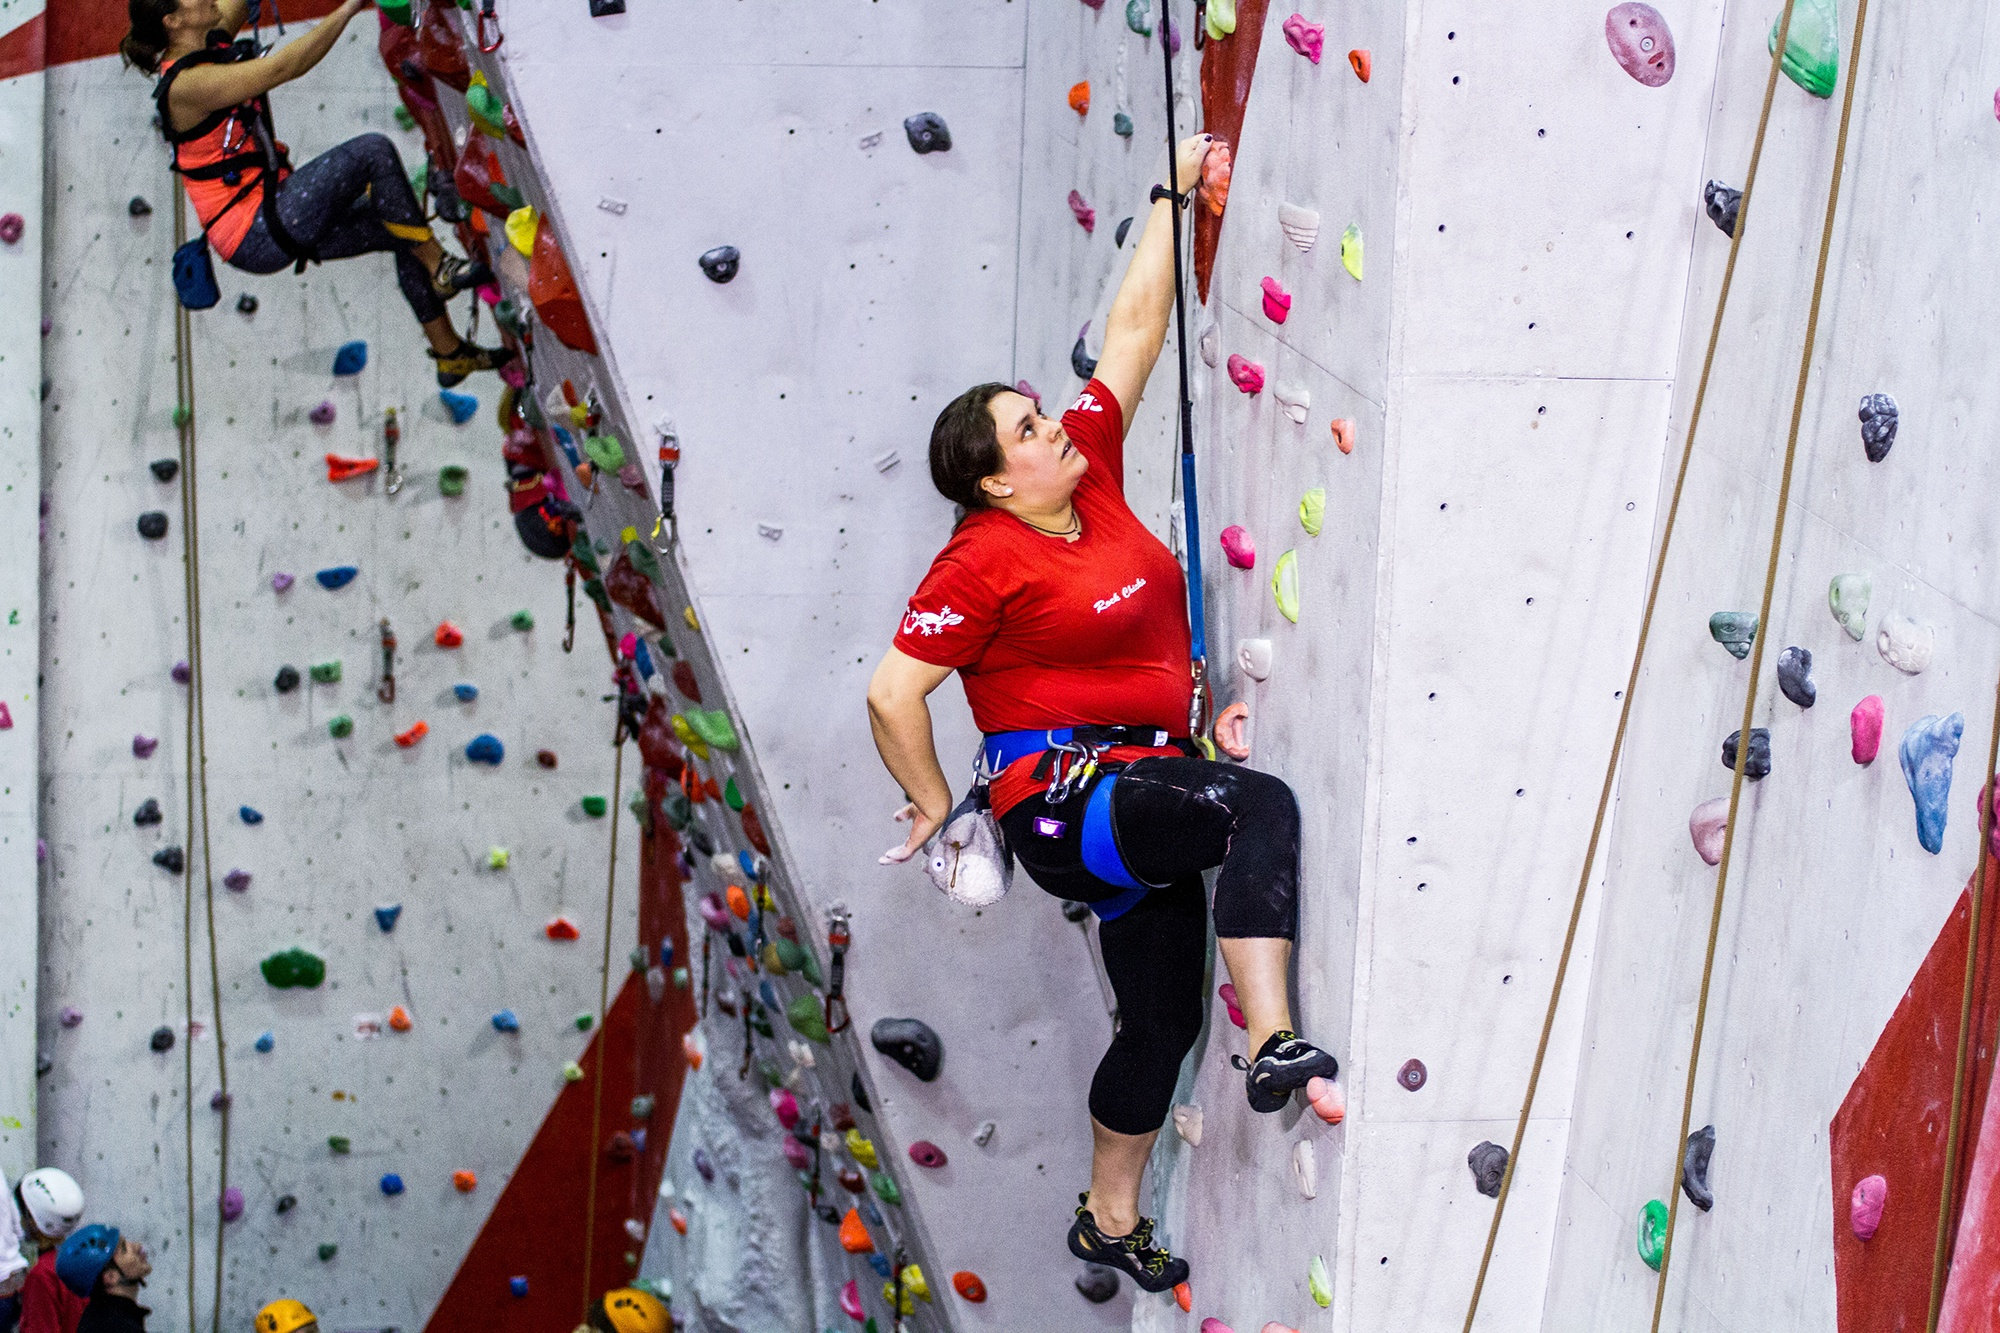 BMC This Girl Can Climbing by Jessie Leong